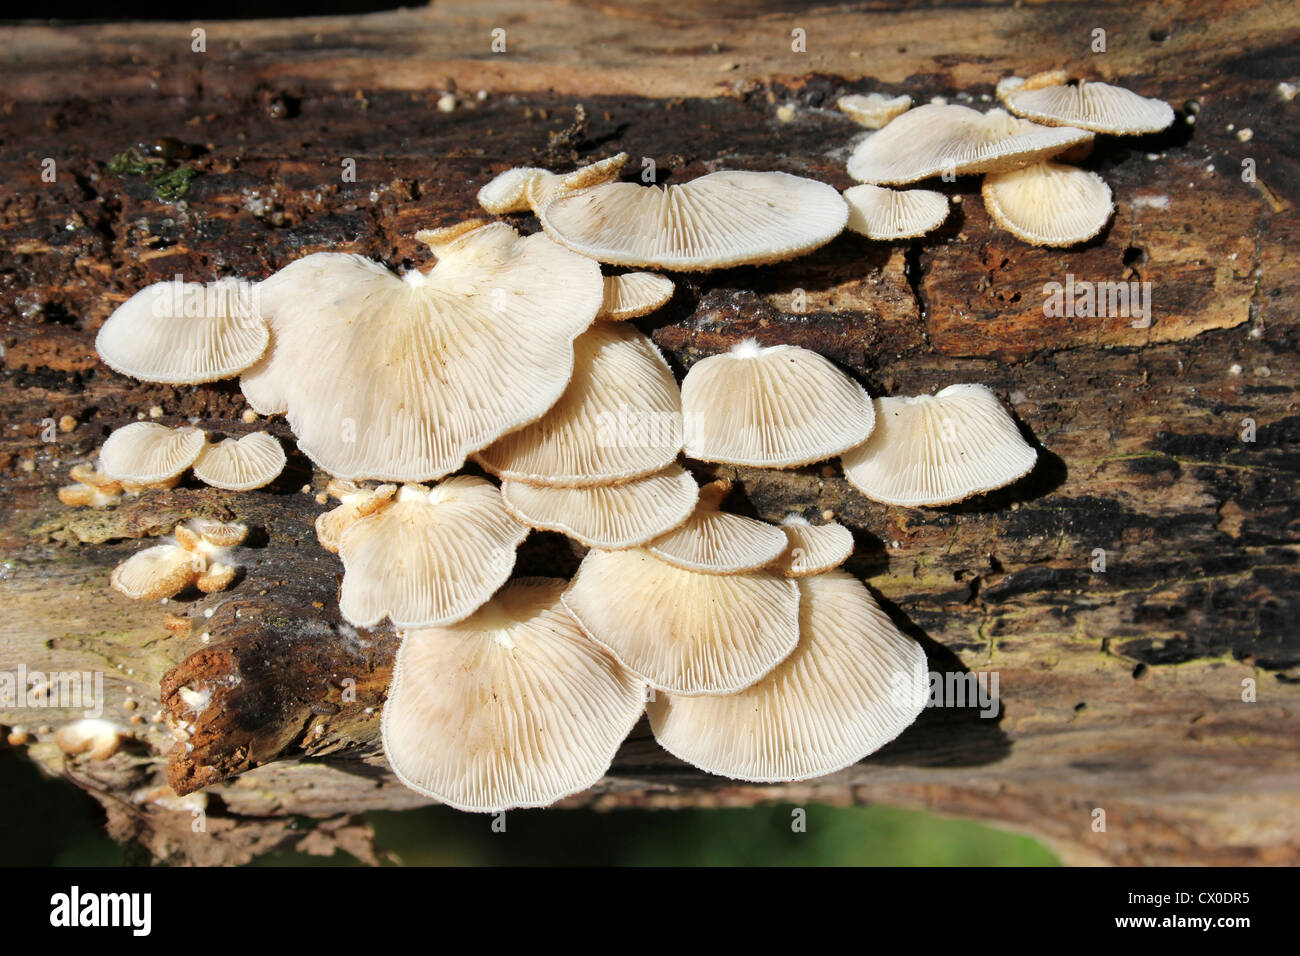 Bitter Oysterling Panellus stipticus - Stock Image